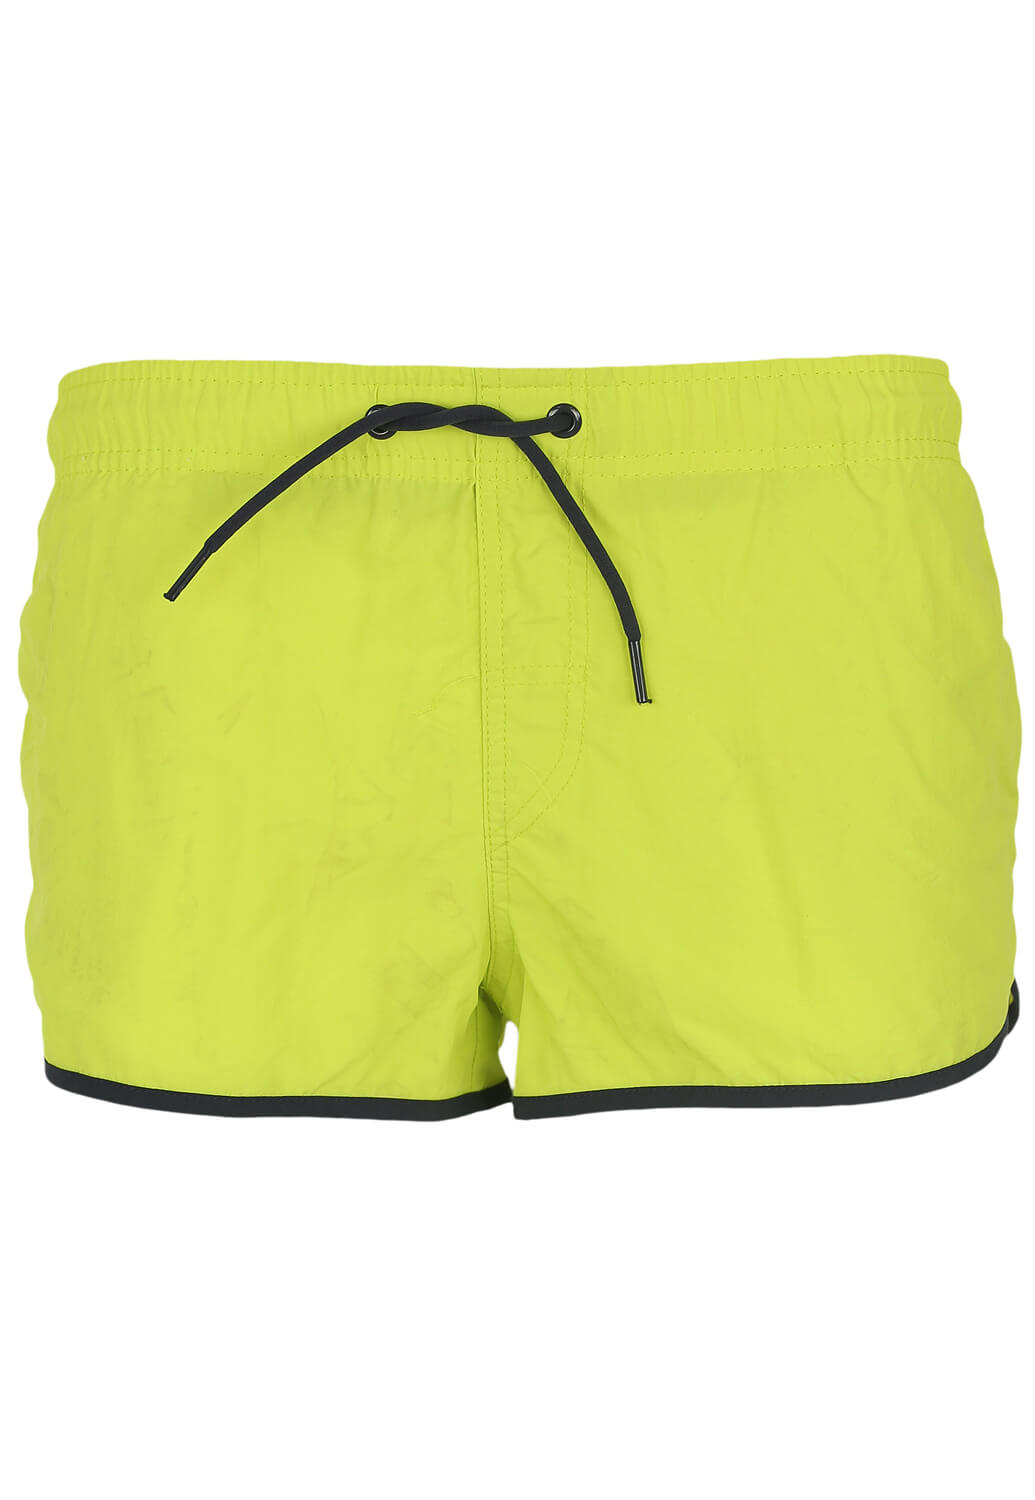 Pantaloni scurti de baie Bershka Carros Light Green